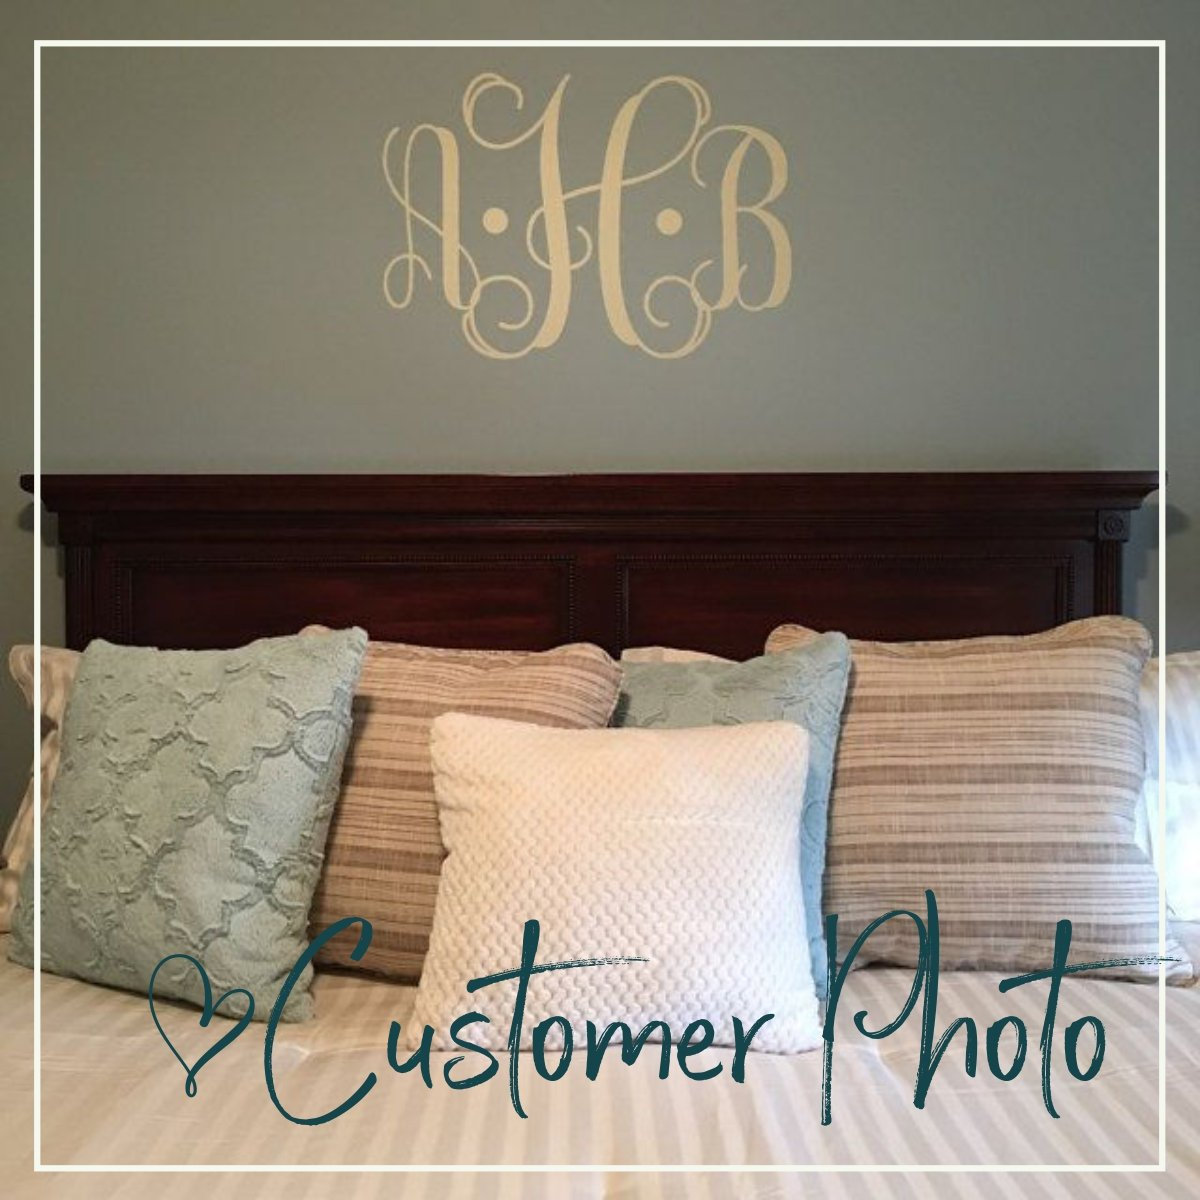 Vine Monogram Vinyl Wall Decal for the Master Bedroom Newlywed Sanctuary | Personalized Wedding Gift